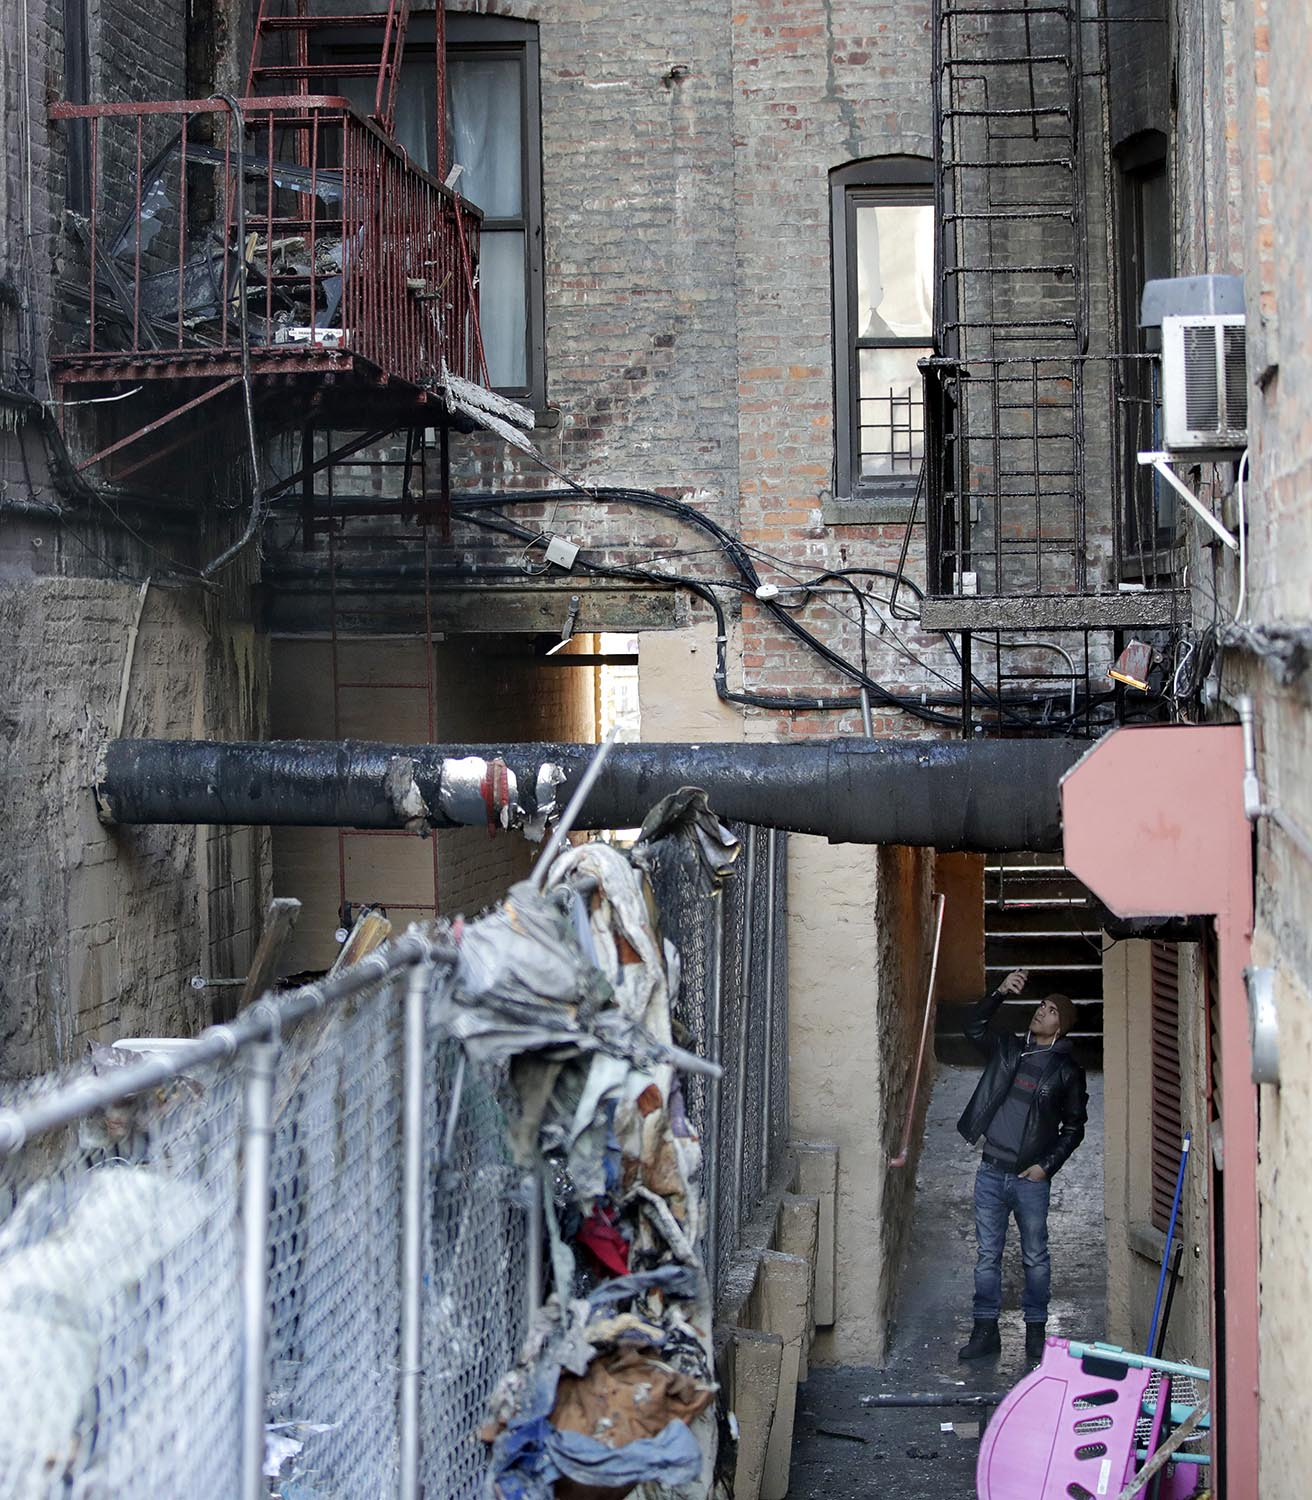 """<div class=""""meta image-caption""""><div class=""""origin-logo origin-image ap""""><span>AP</span></div><span class=""""caption-text"""">A man uses a cell phone to take images of an apartment building where more than 10 people died in fire a day earlier in the Bronx borough of New York, Friday, Dec. 29, 2017. (AP Photo/Julio Cortez)</span></div>"""